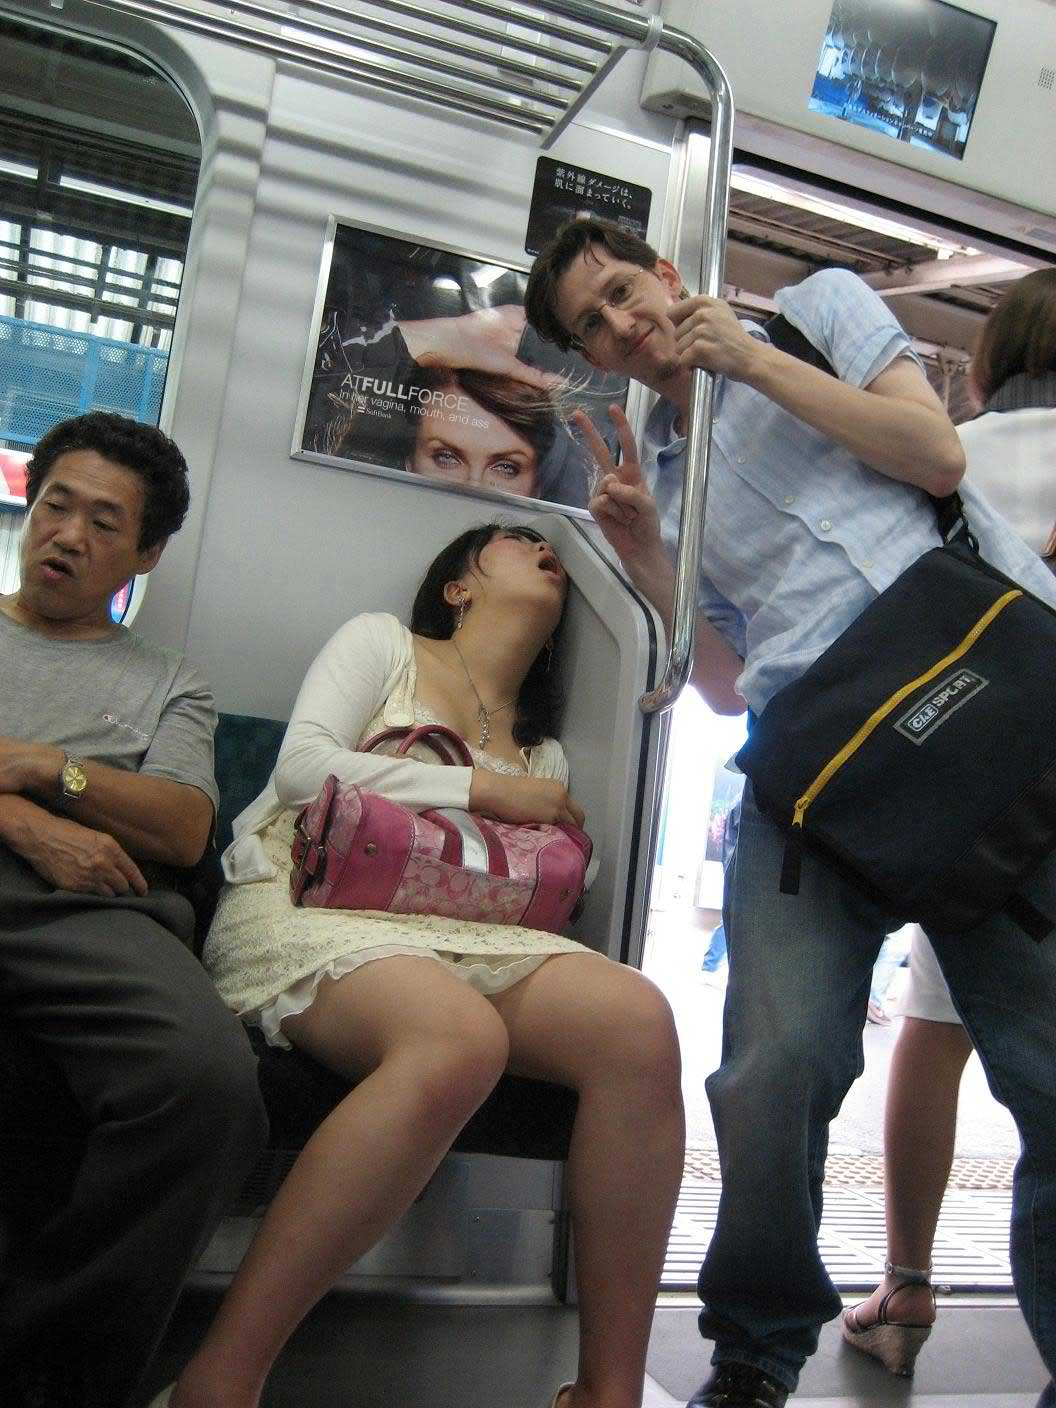 woman spreading large asshole